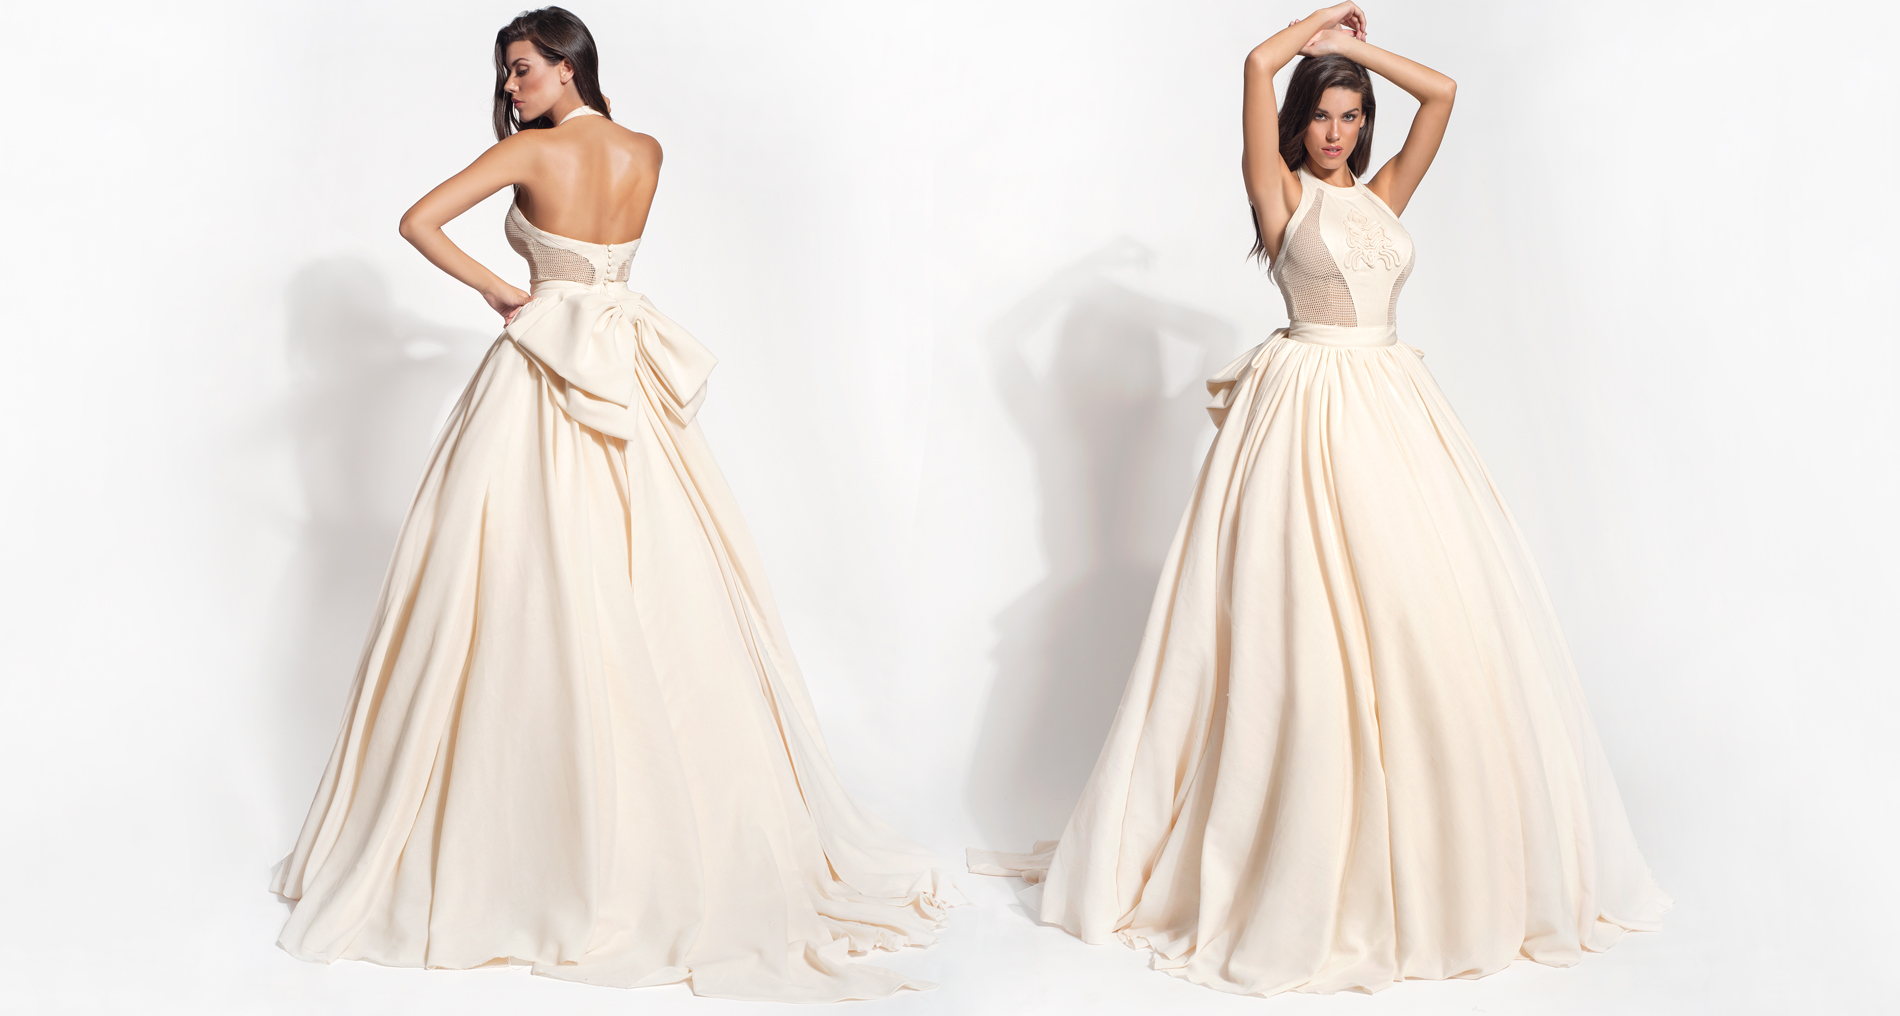 Ioli wedding dress from  Hellenic Vintage Core Collection